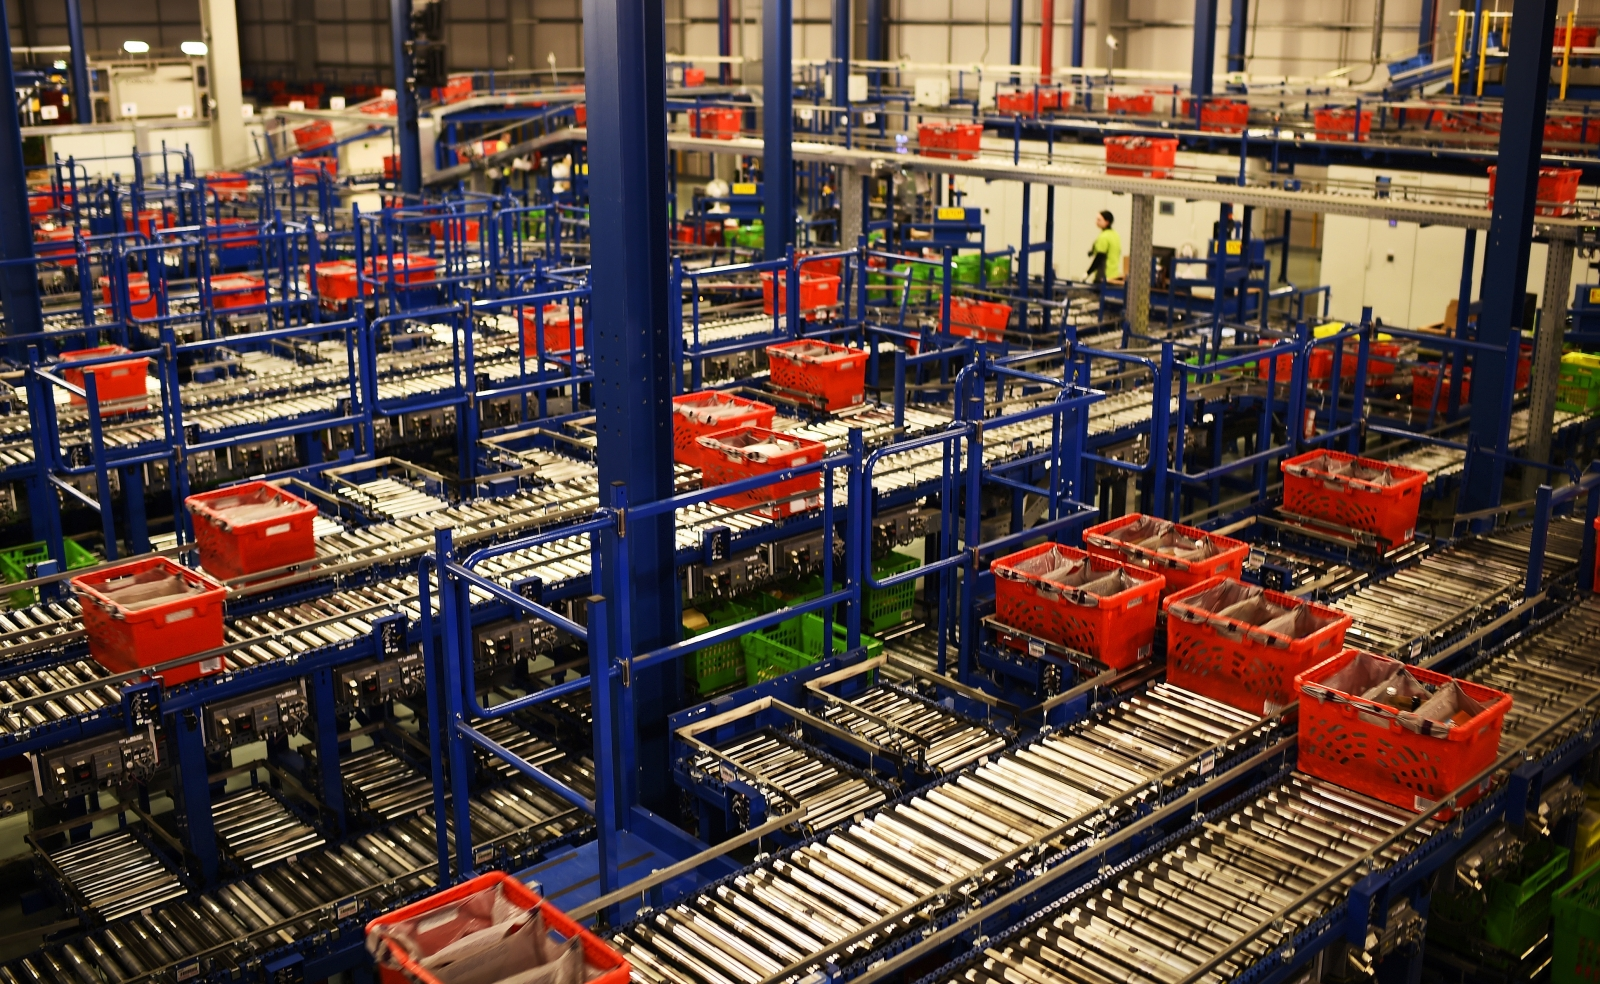 Ocado reports increase in revenues and profits for the first half of 2016